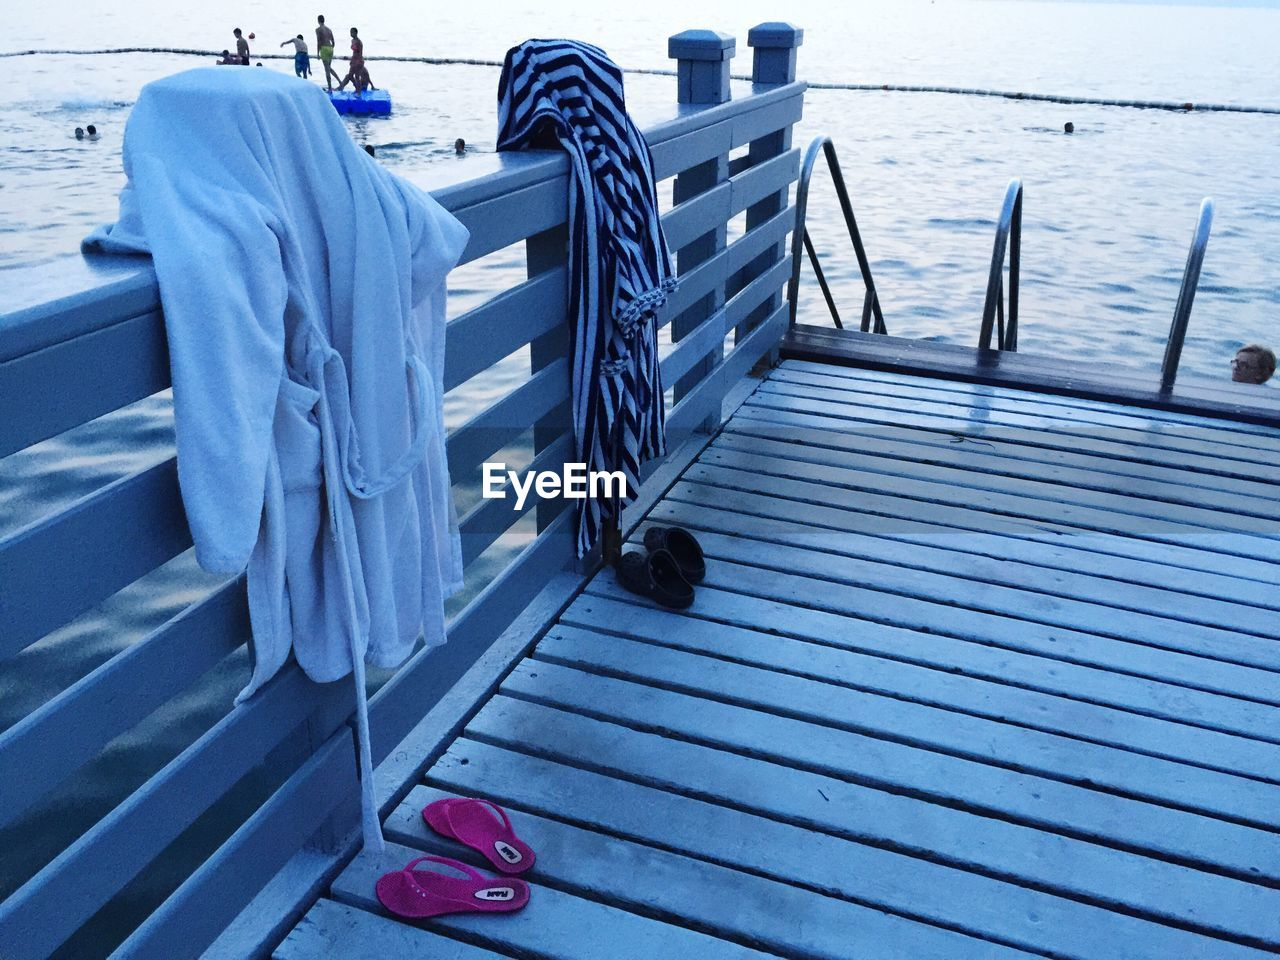 Flip-Flops And Bathrobes On Railing At Pier By Sea